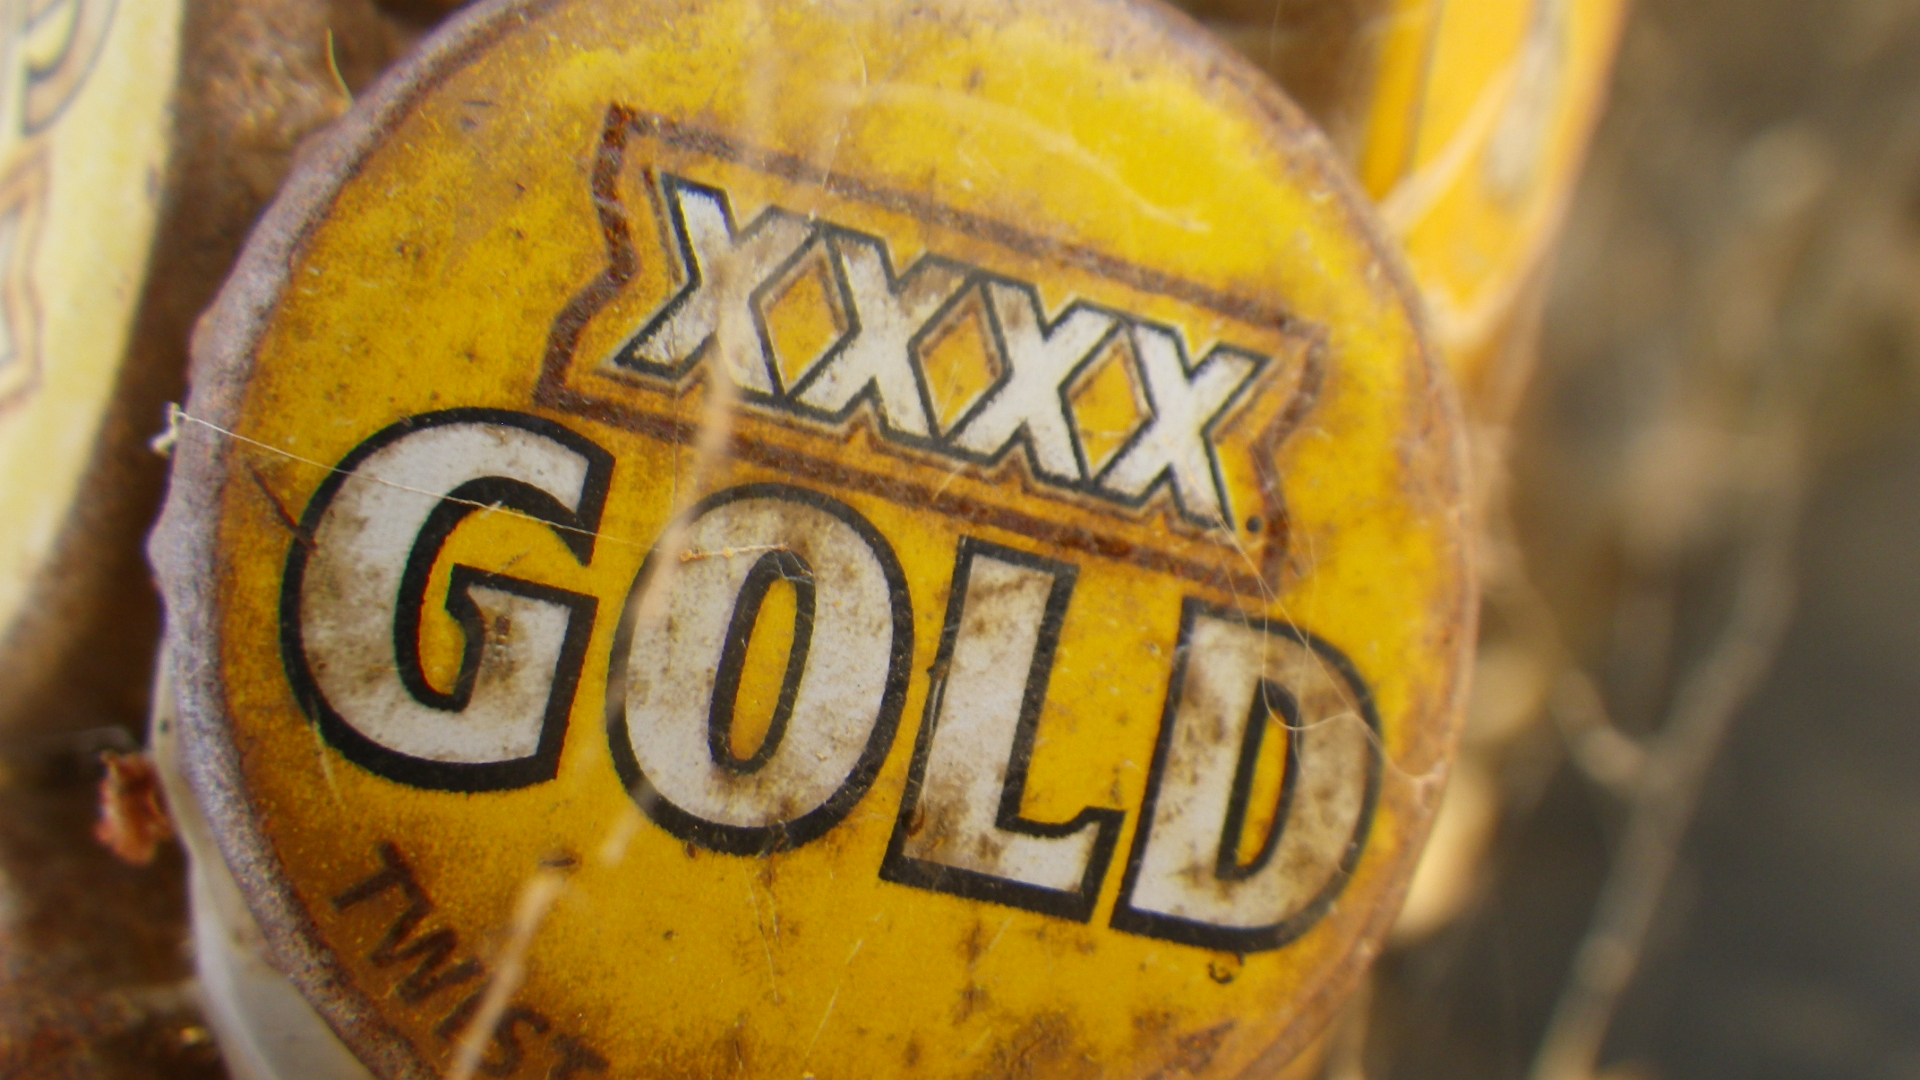 XXXX Gold Beer: A full detail about XXXX Gold Beer